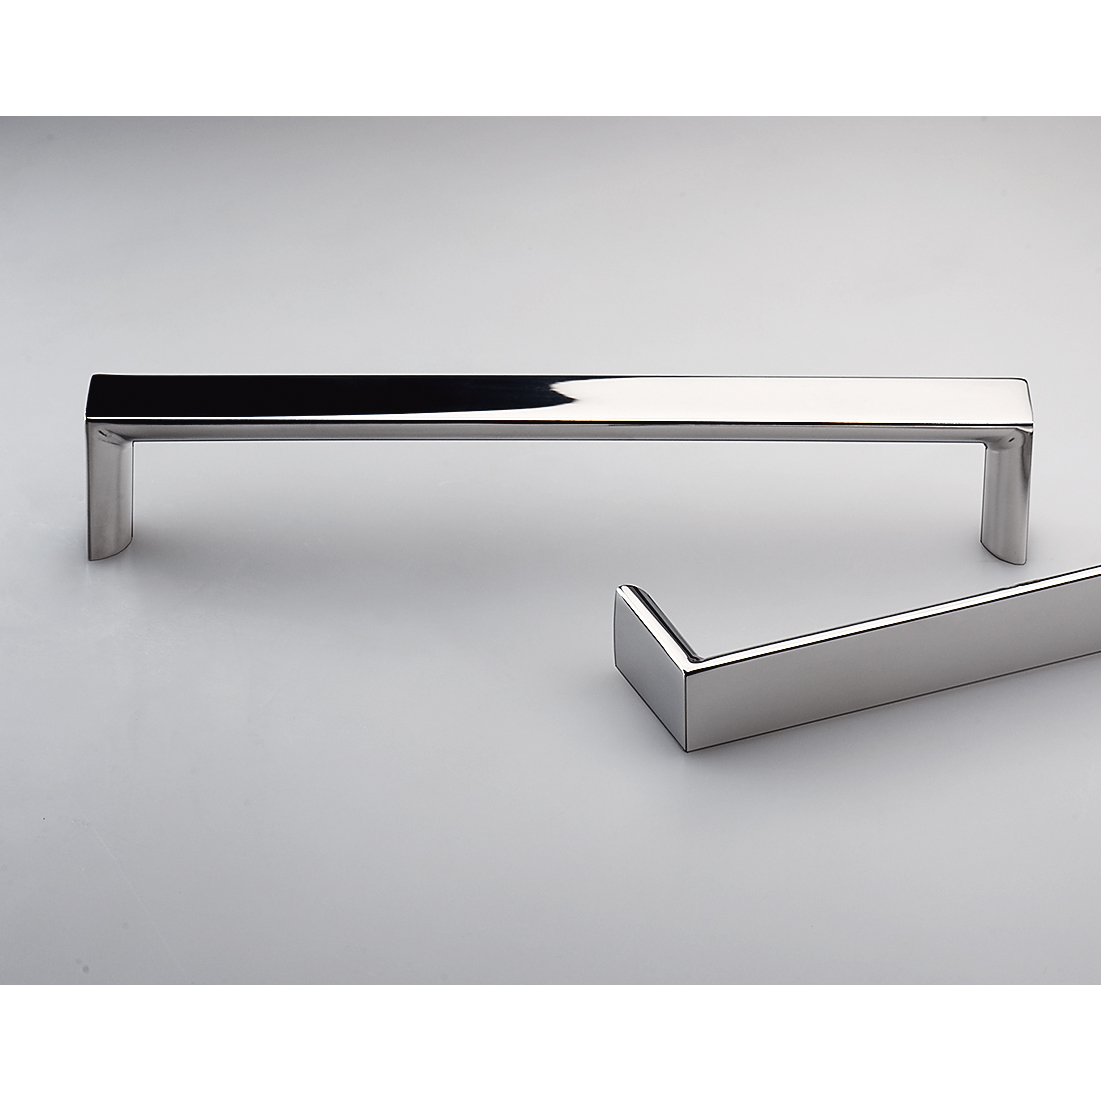 Latina Polished Stainless Steel Kitchen Handles E2123